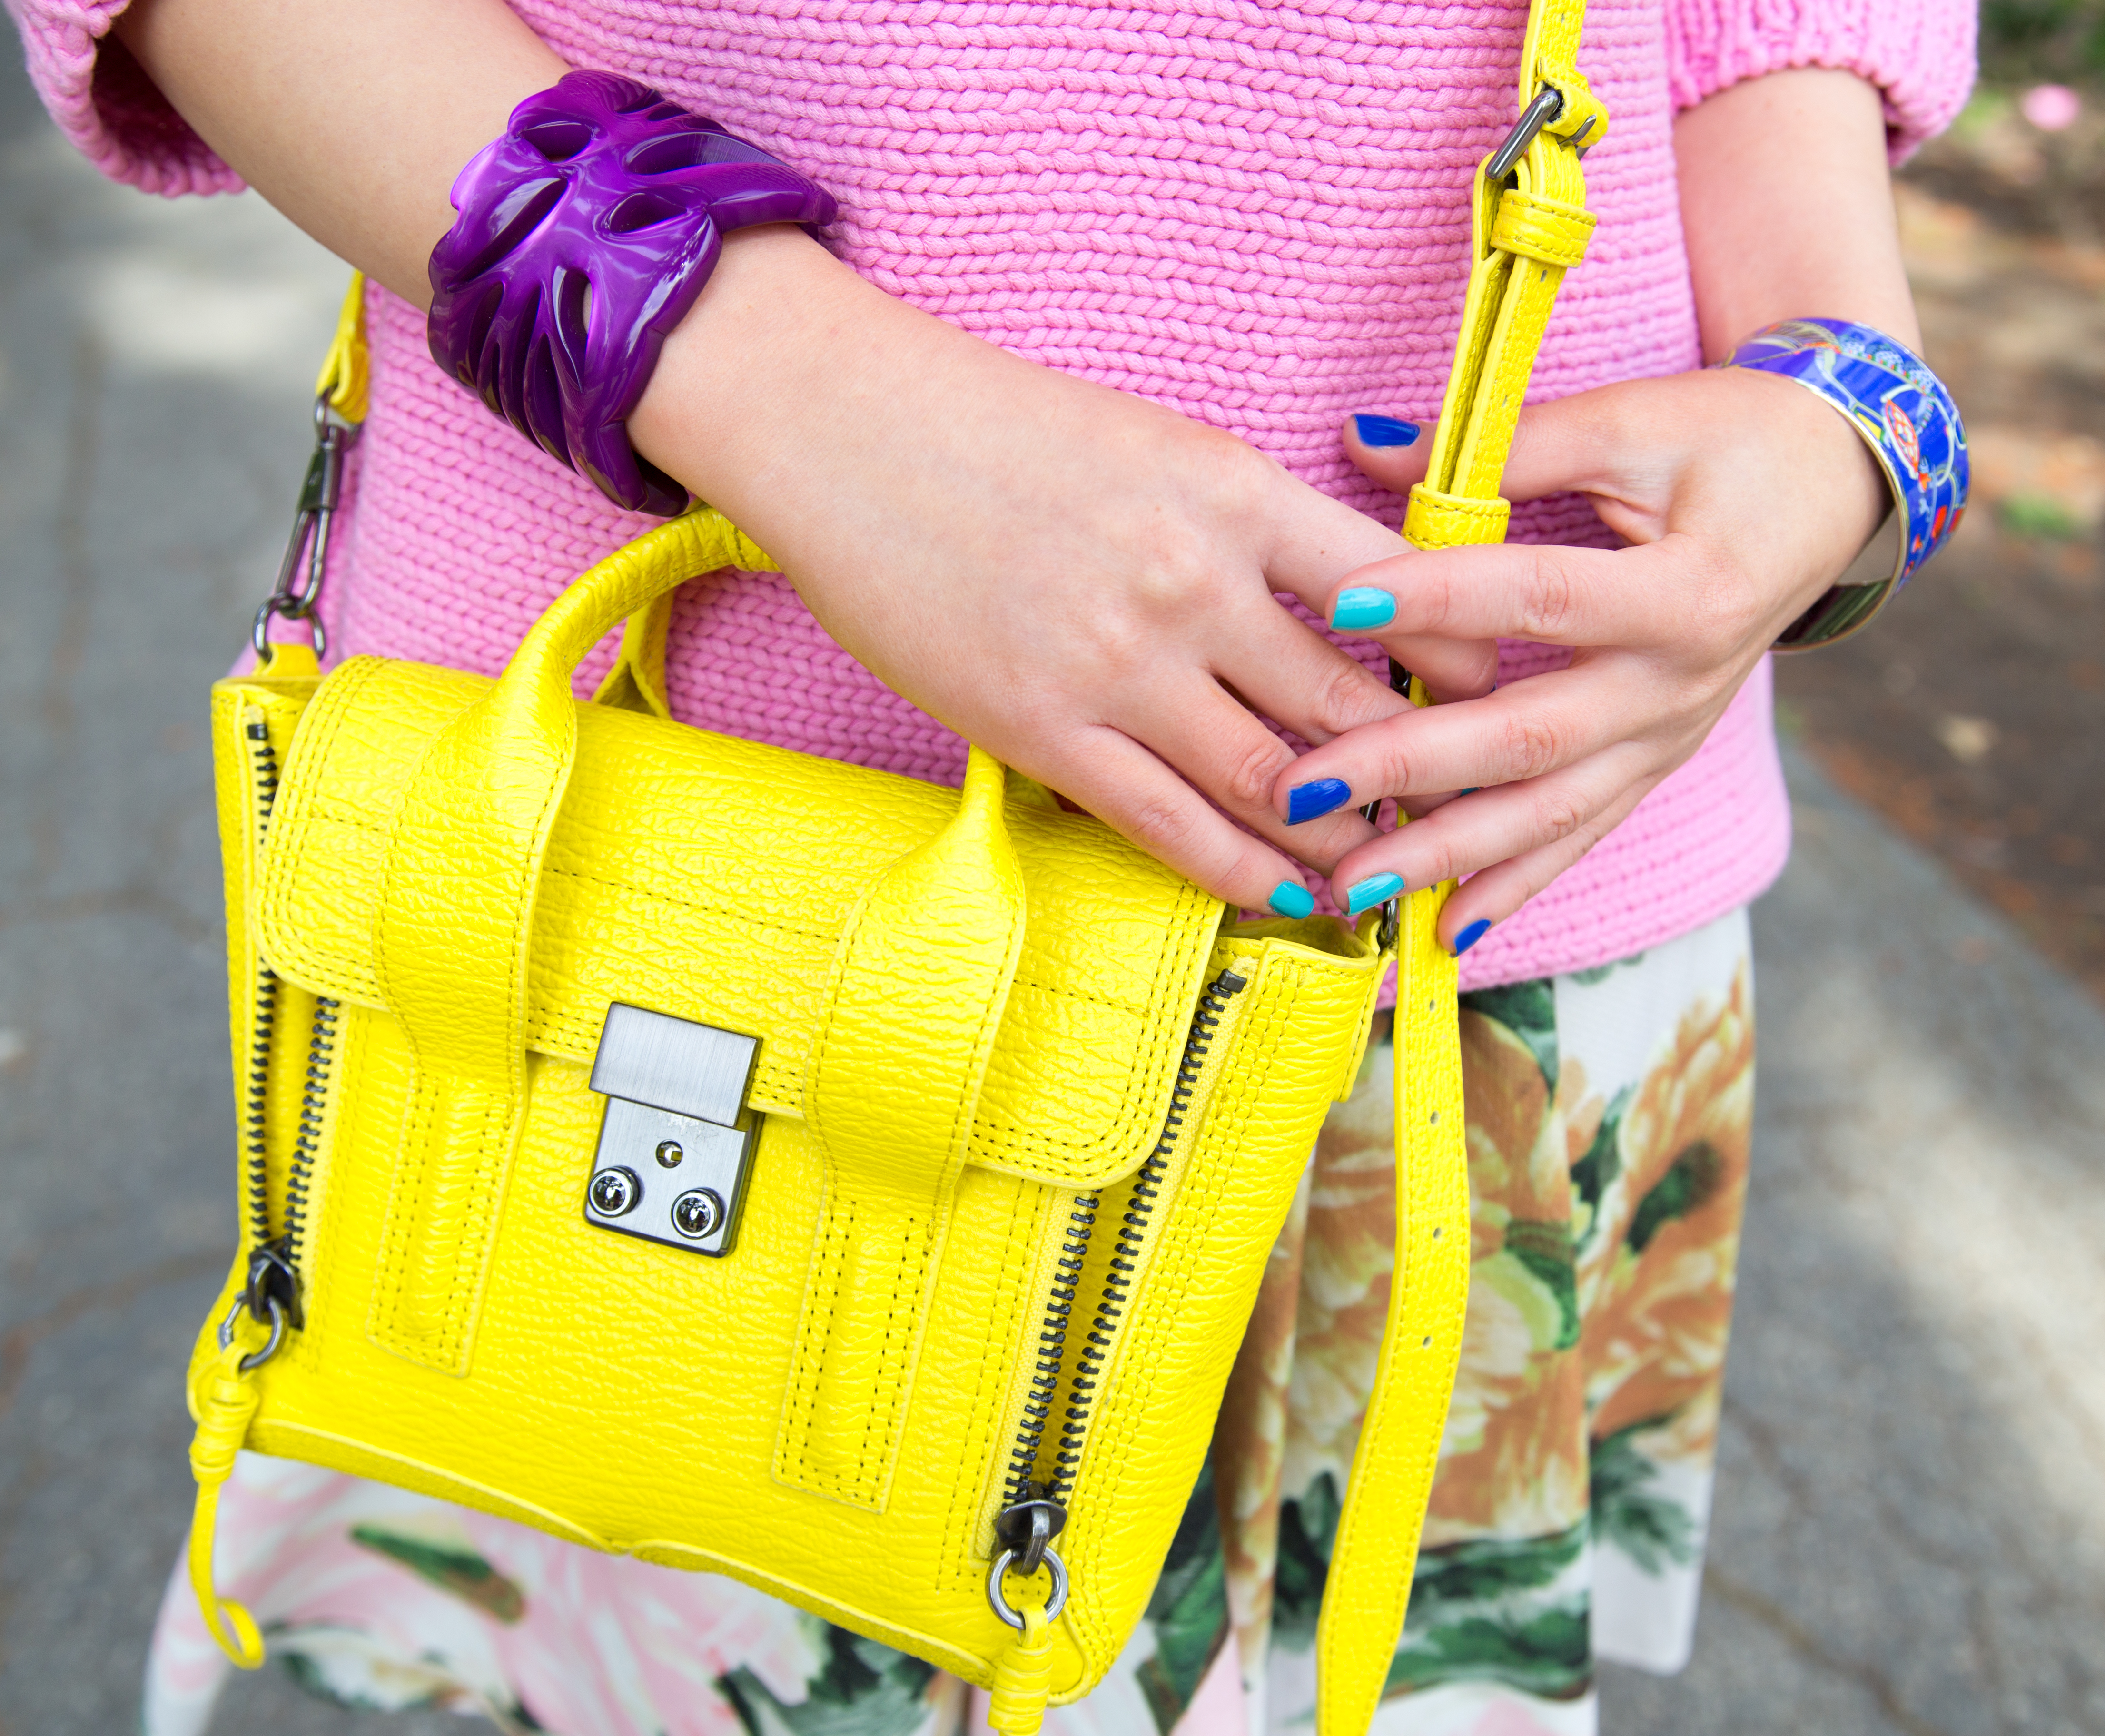 blue nails,yellow bag,neon bag,nail art,yellow and purple,pashli mini